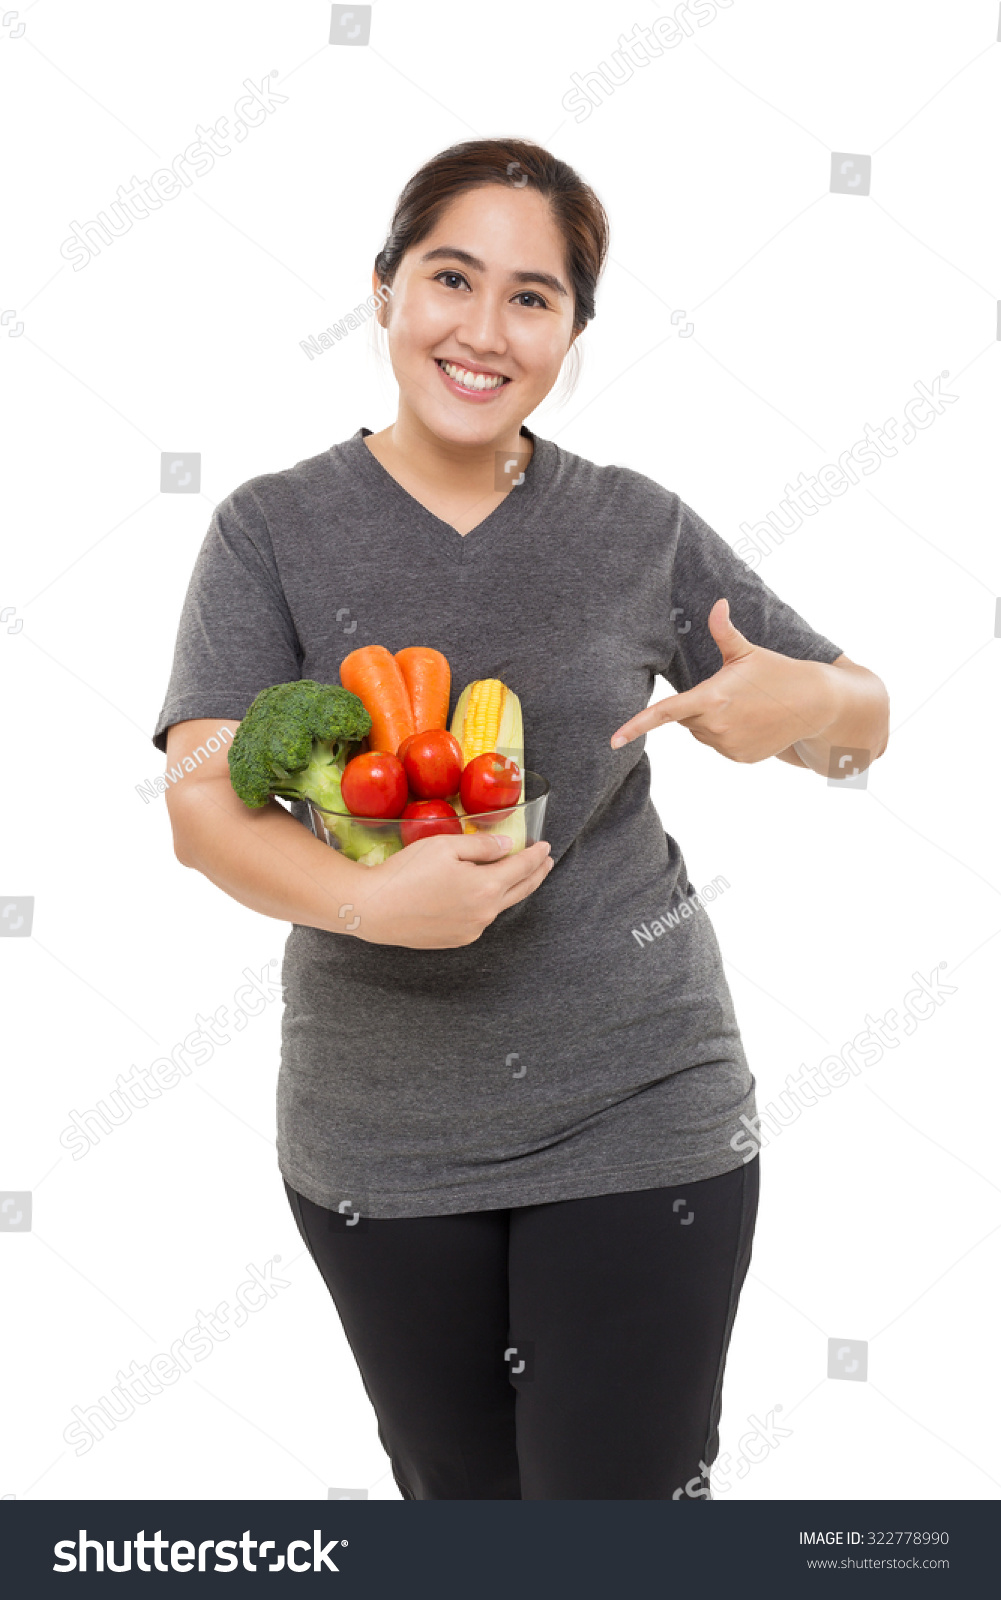 Fat Asian woman holding a bowl of vegetable isolated on white background.  Pointing finger at